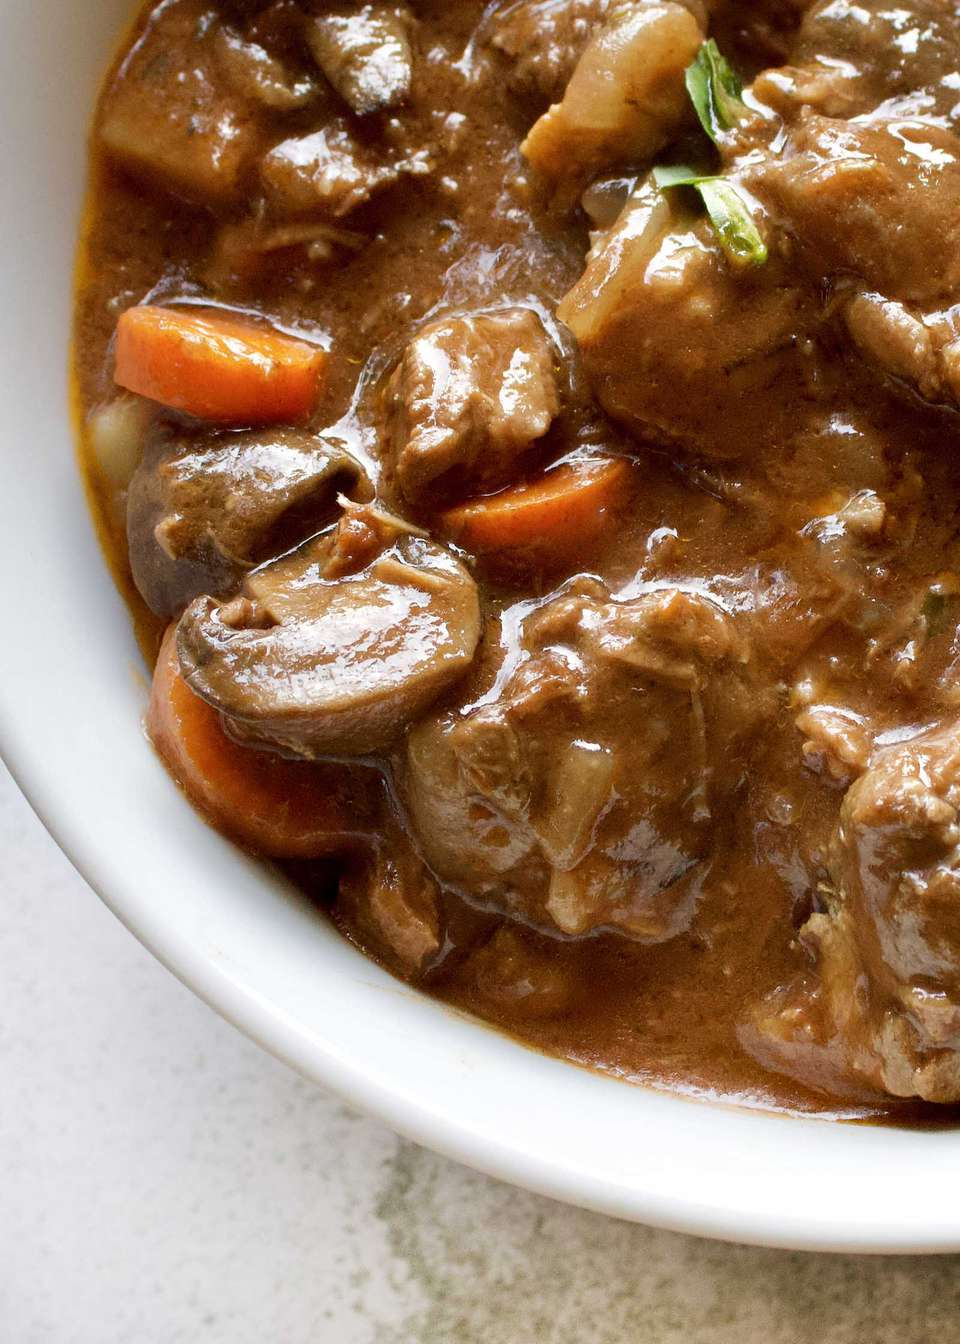 A thick bowl of Slow Cooker Beef Stew with chunks of meat, carrots and mushrooms visible.